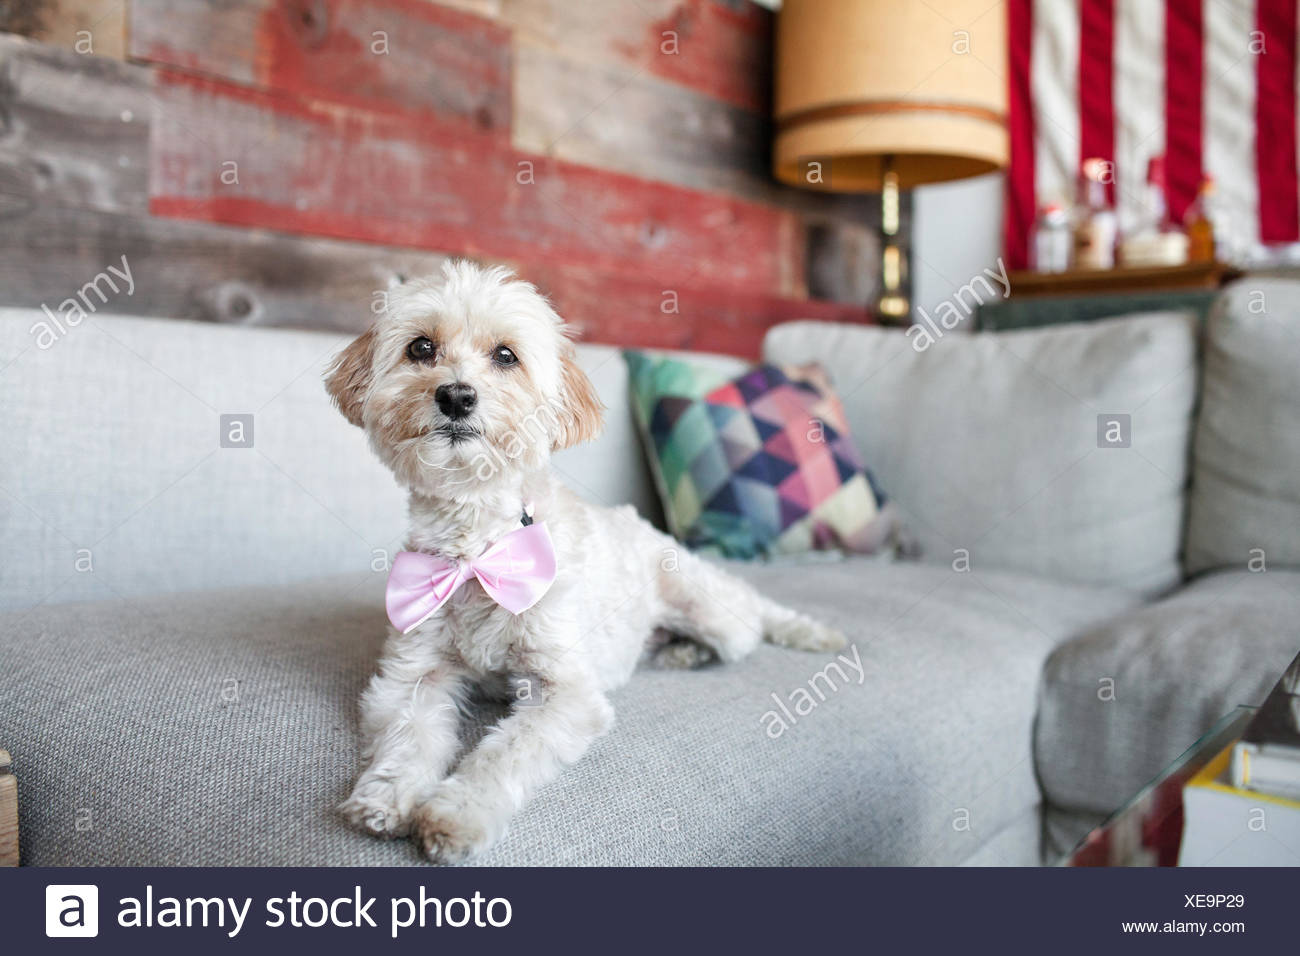 Portrait of cute dog lying on living room sofa - Stock Image